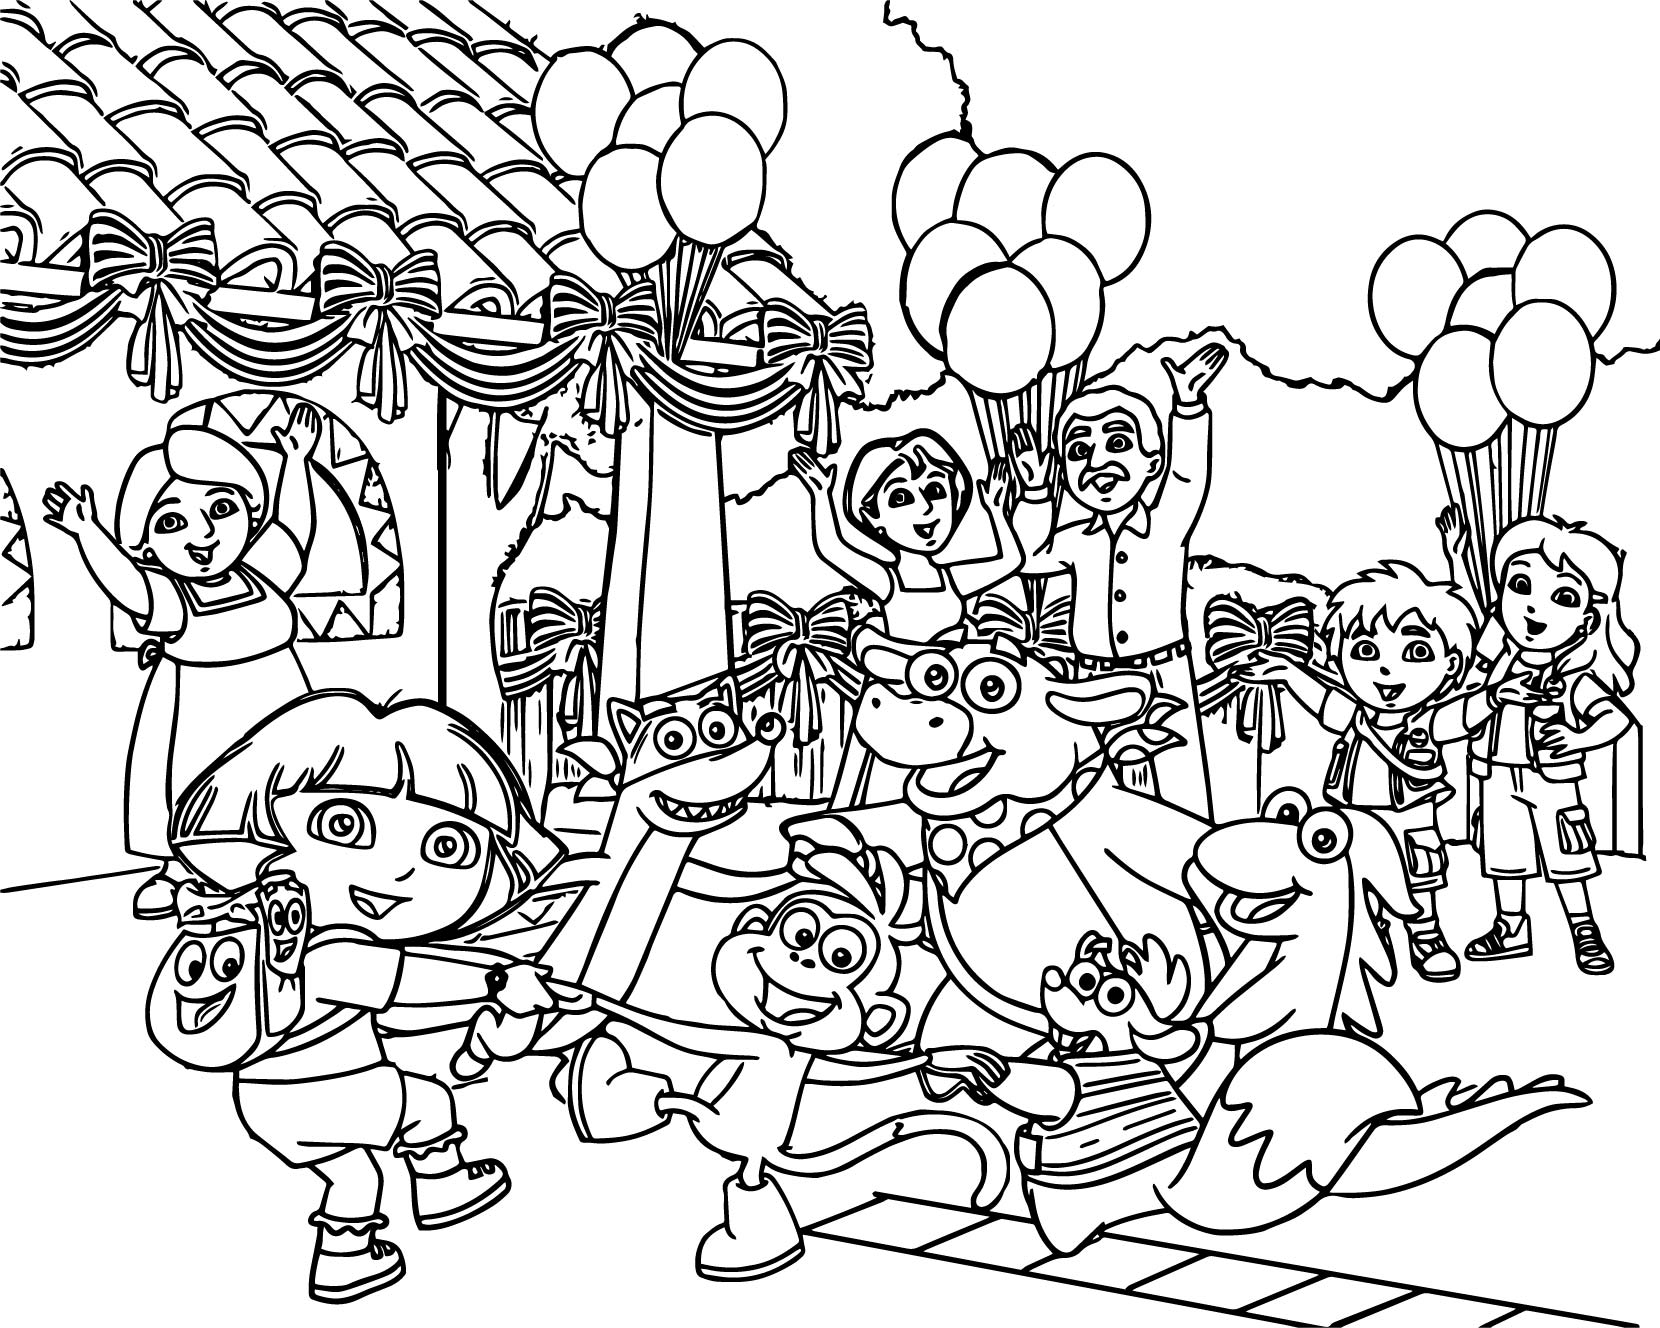 1660x1328 The Dora The Explorer Party Cartoon Family Coloring Page